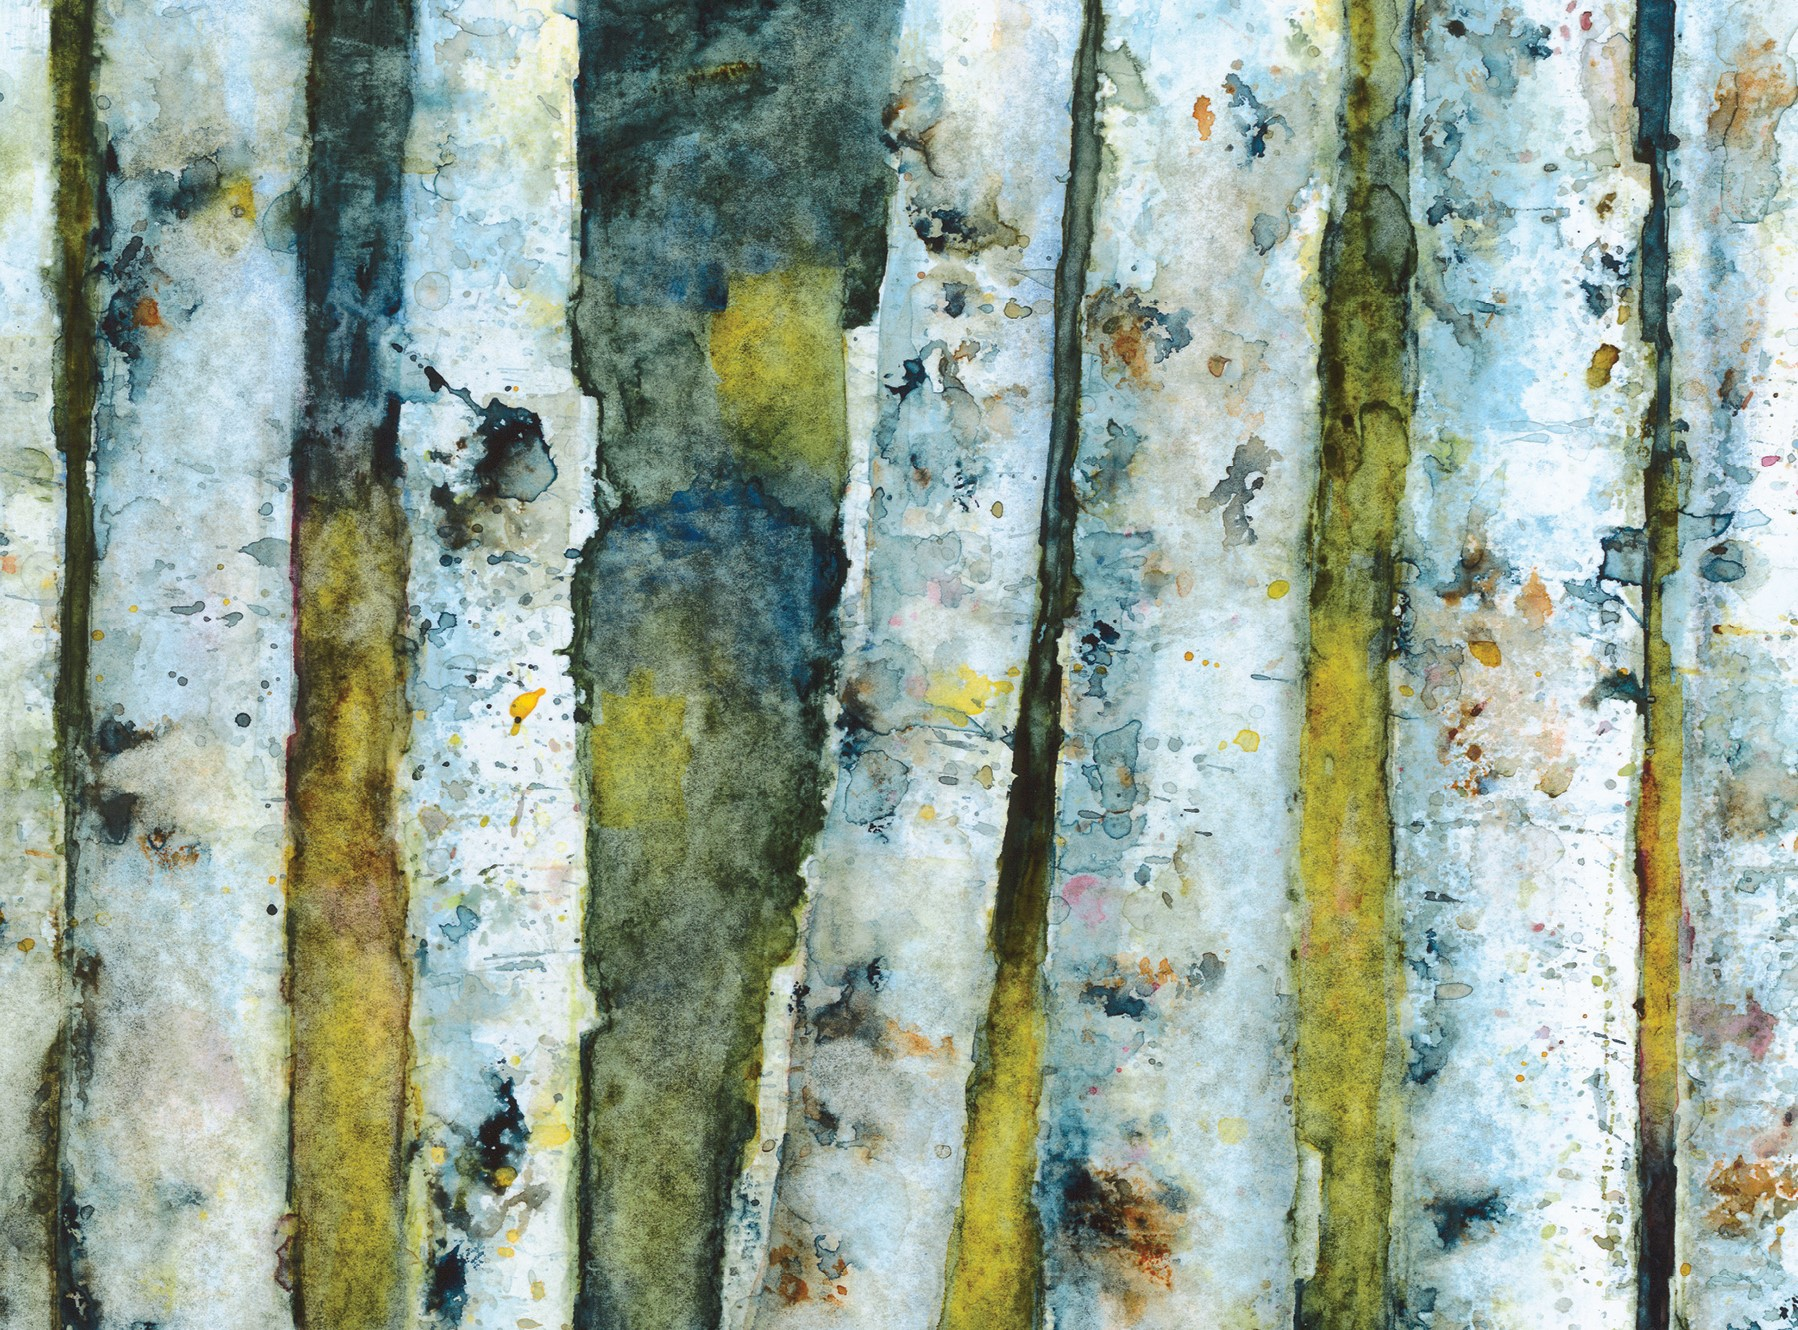 Author John Pastor illustrated his book on the complexities of North Woods ecosystems.